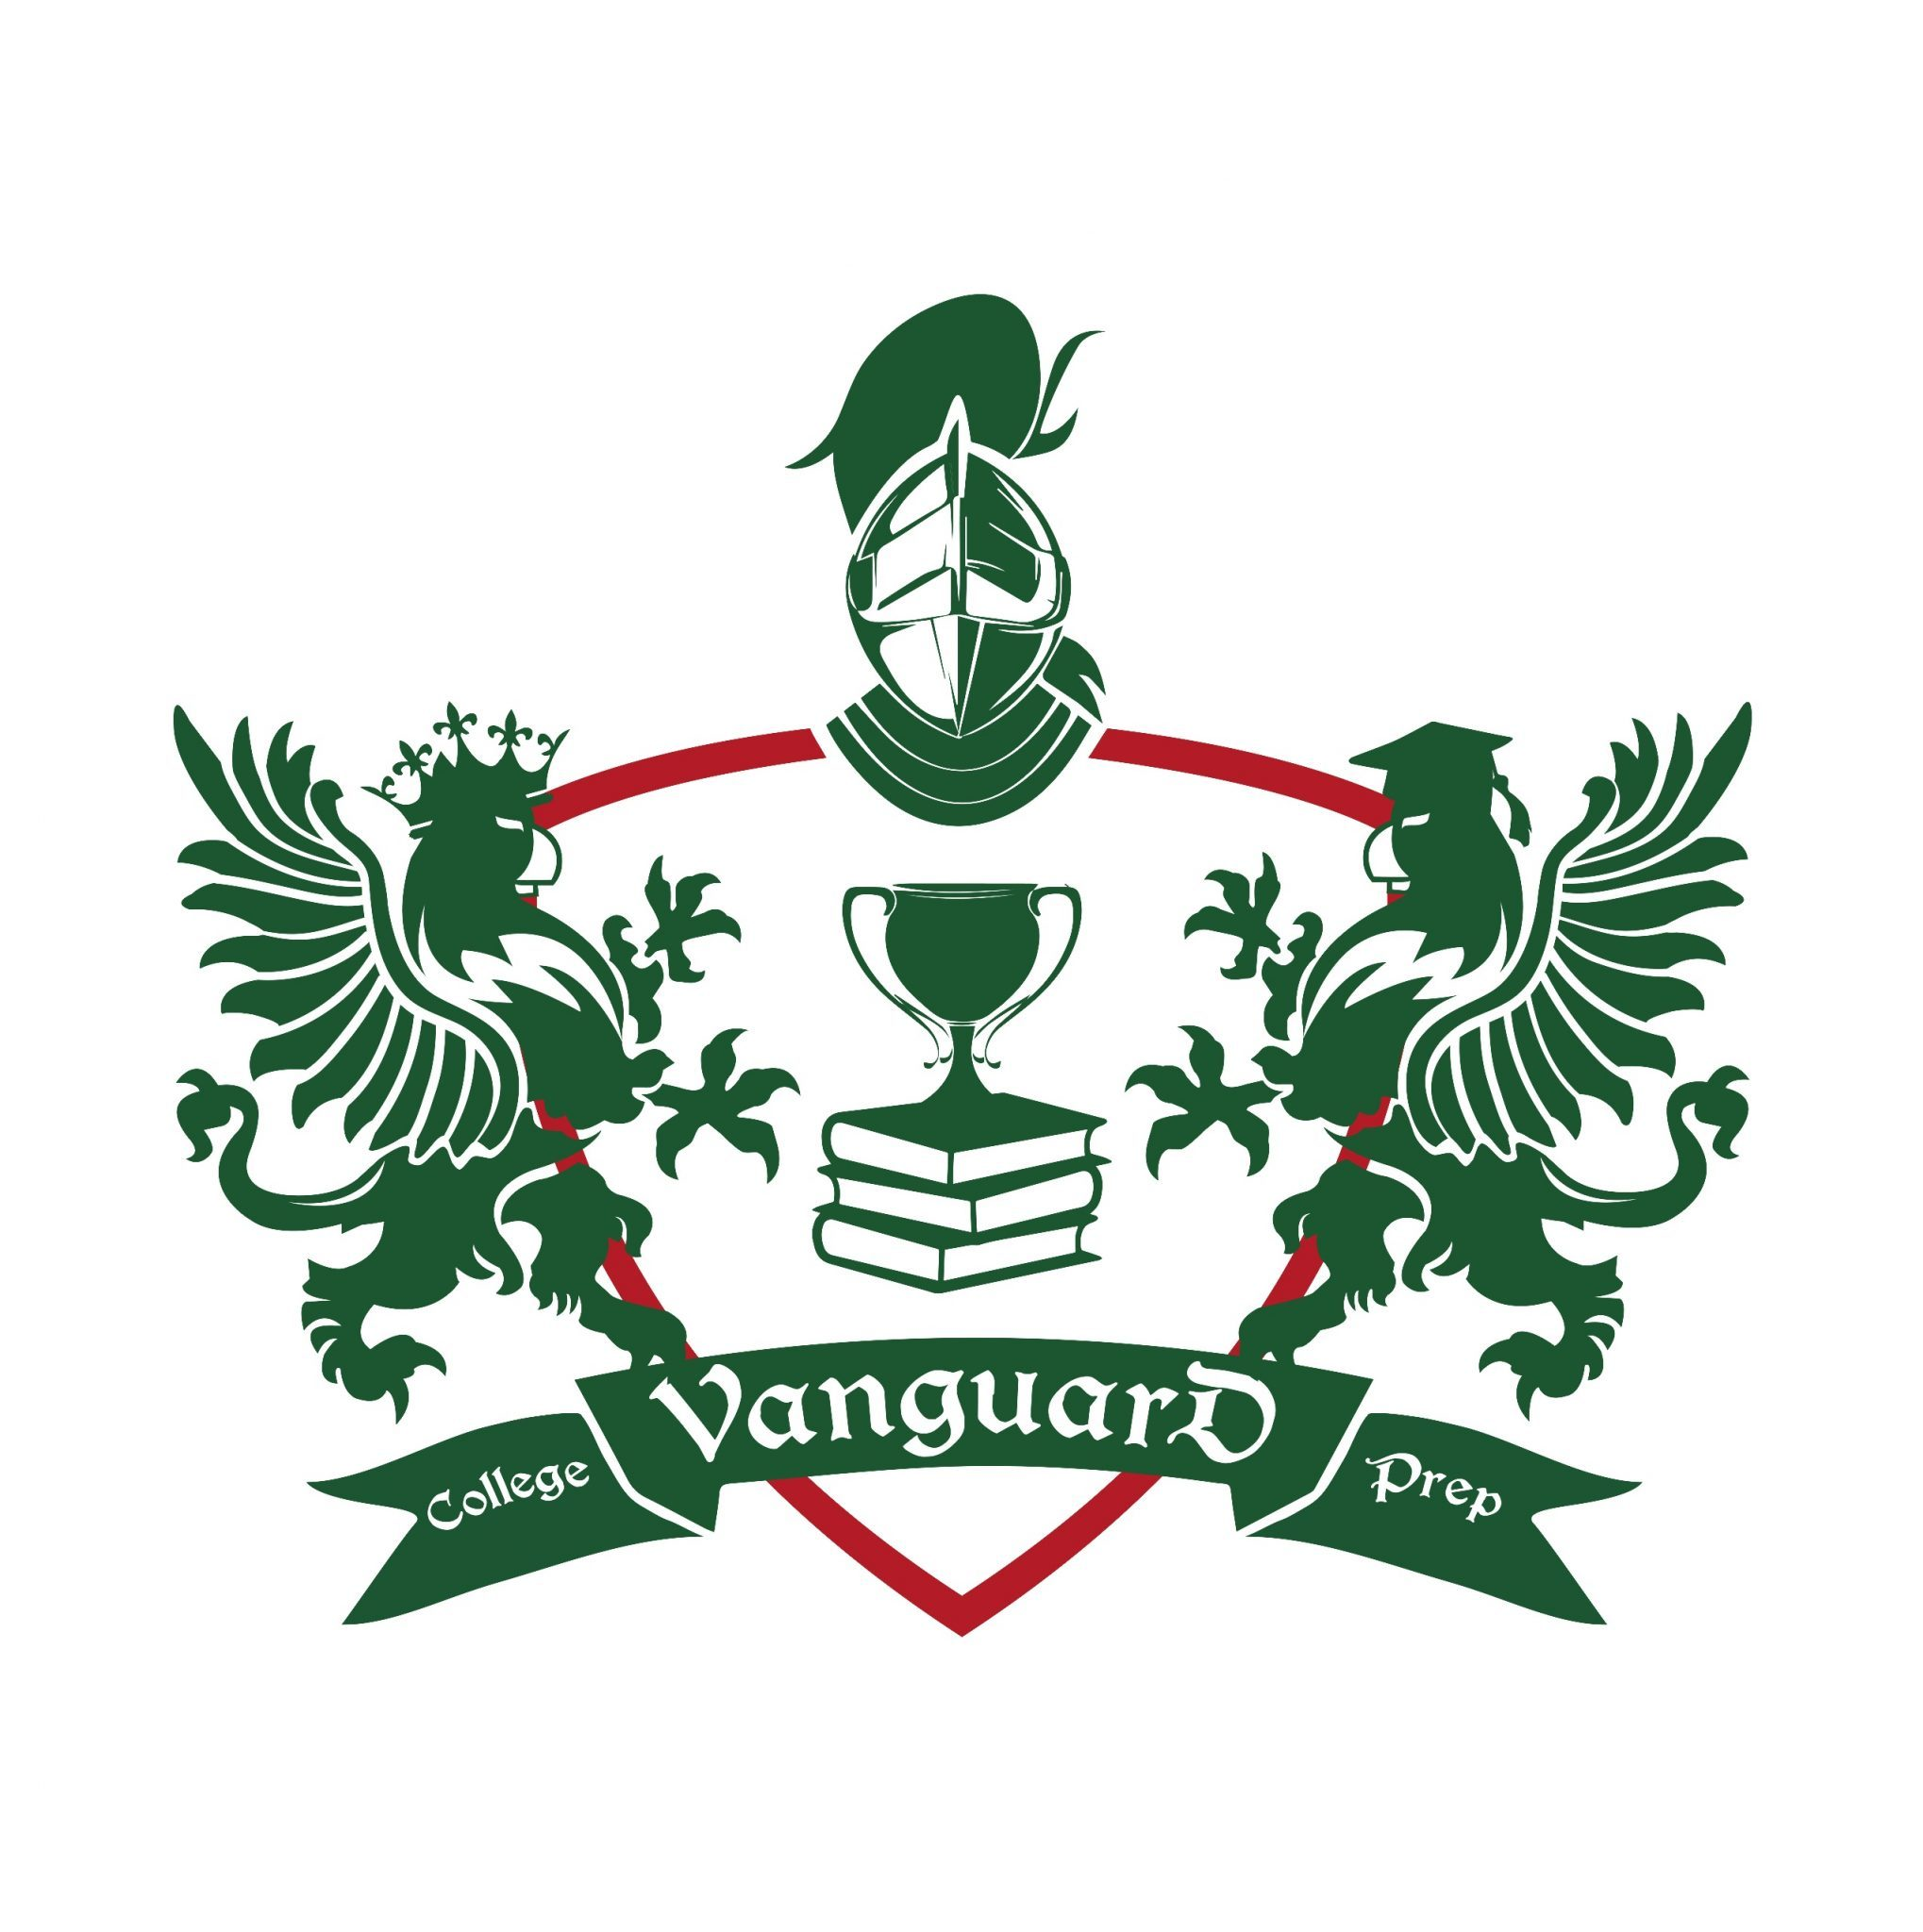 Vanguard College Prep